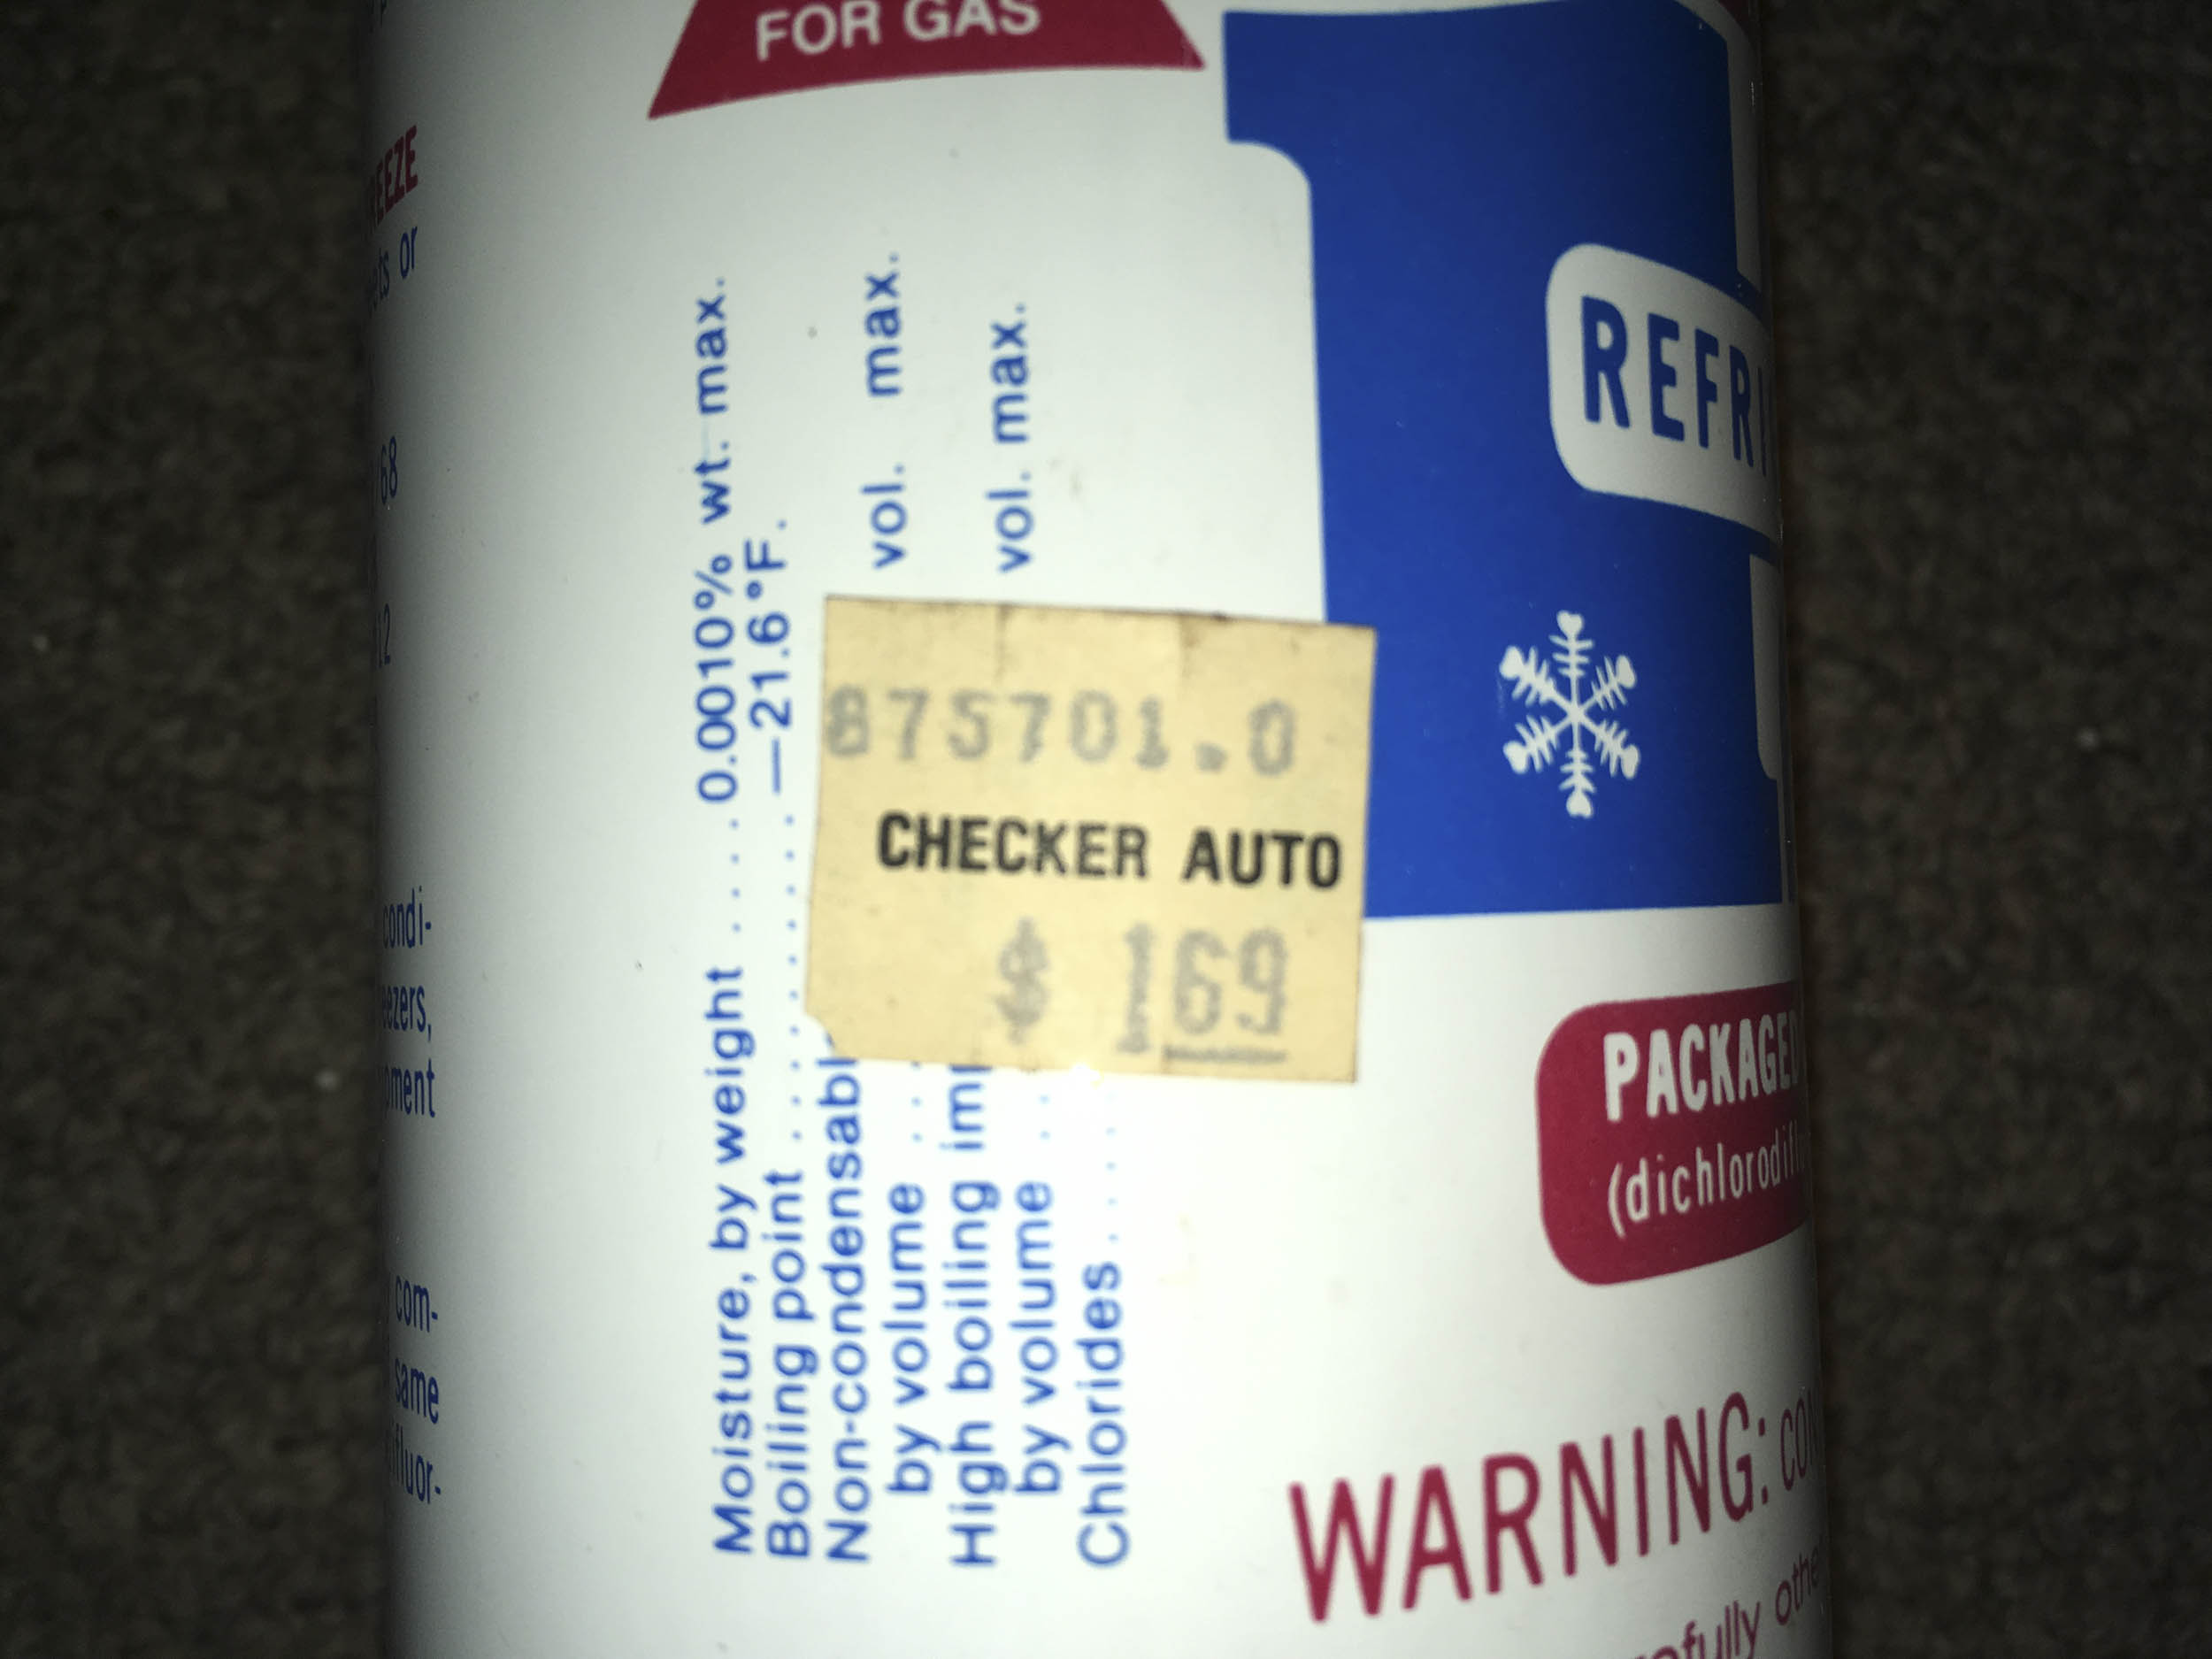 Nothing says New Old Stock (NOS) on a can of R12 like a $1.69 price sticker from Checker Auto.